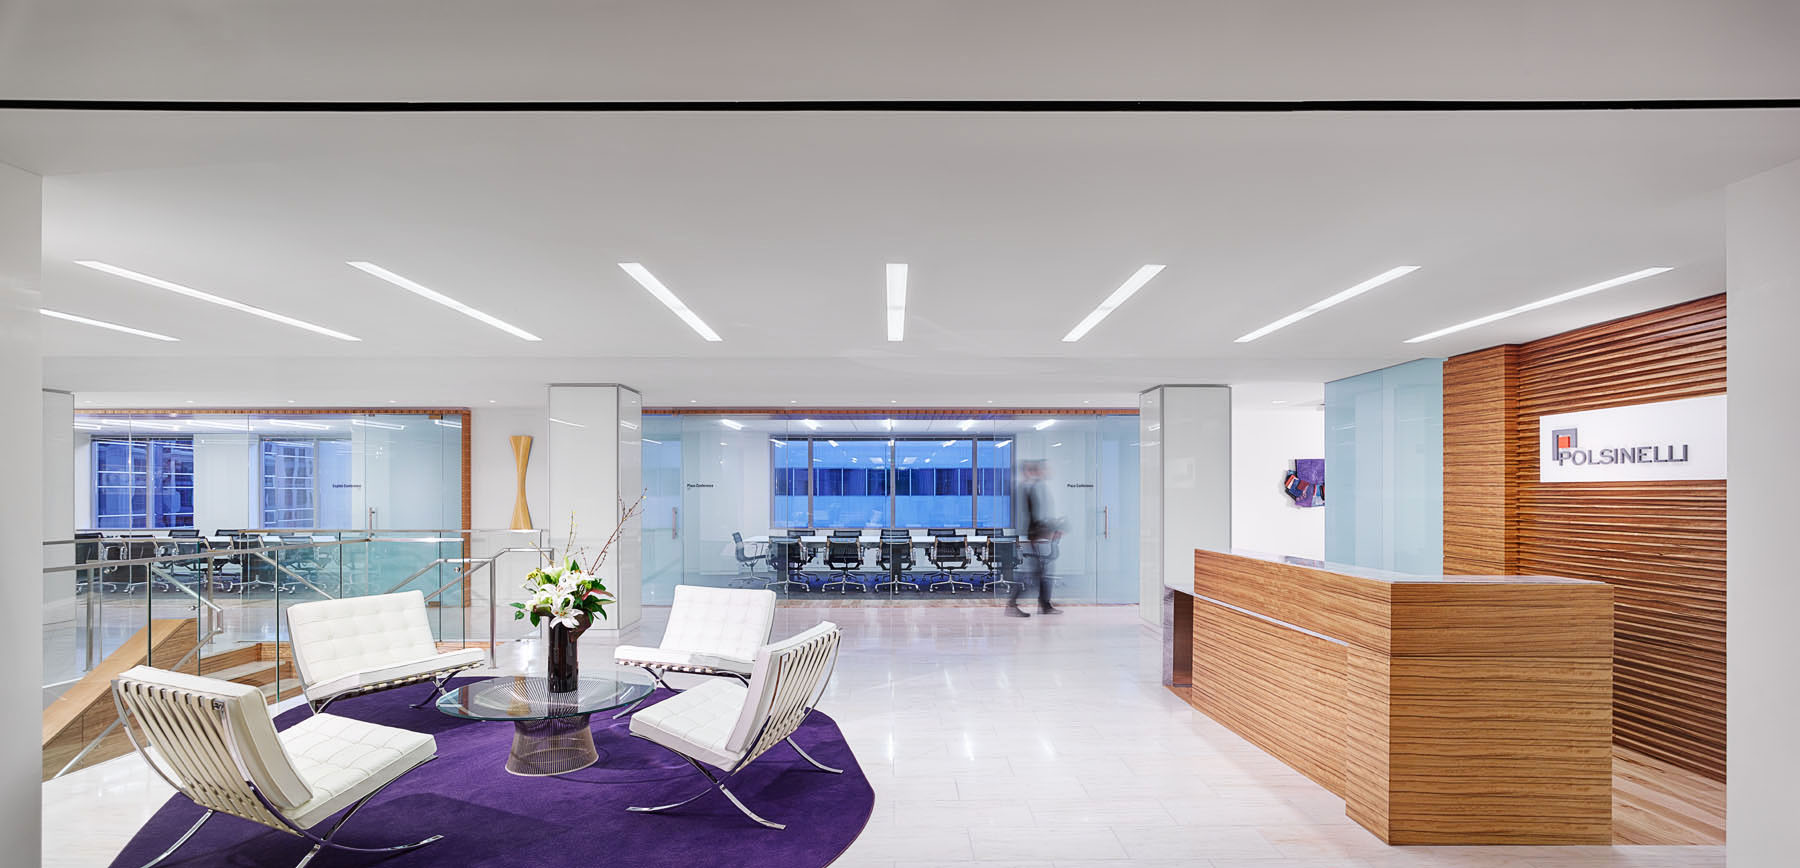 The welcoming lobby of Polsinelli PC's office in Washington, D.C. See a full gallery of the portfolio of new offices at the end of the article.